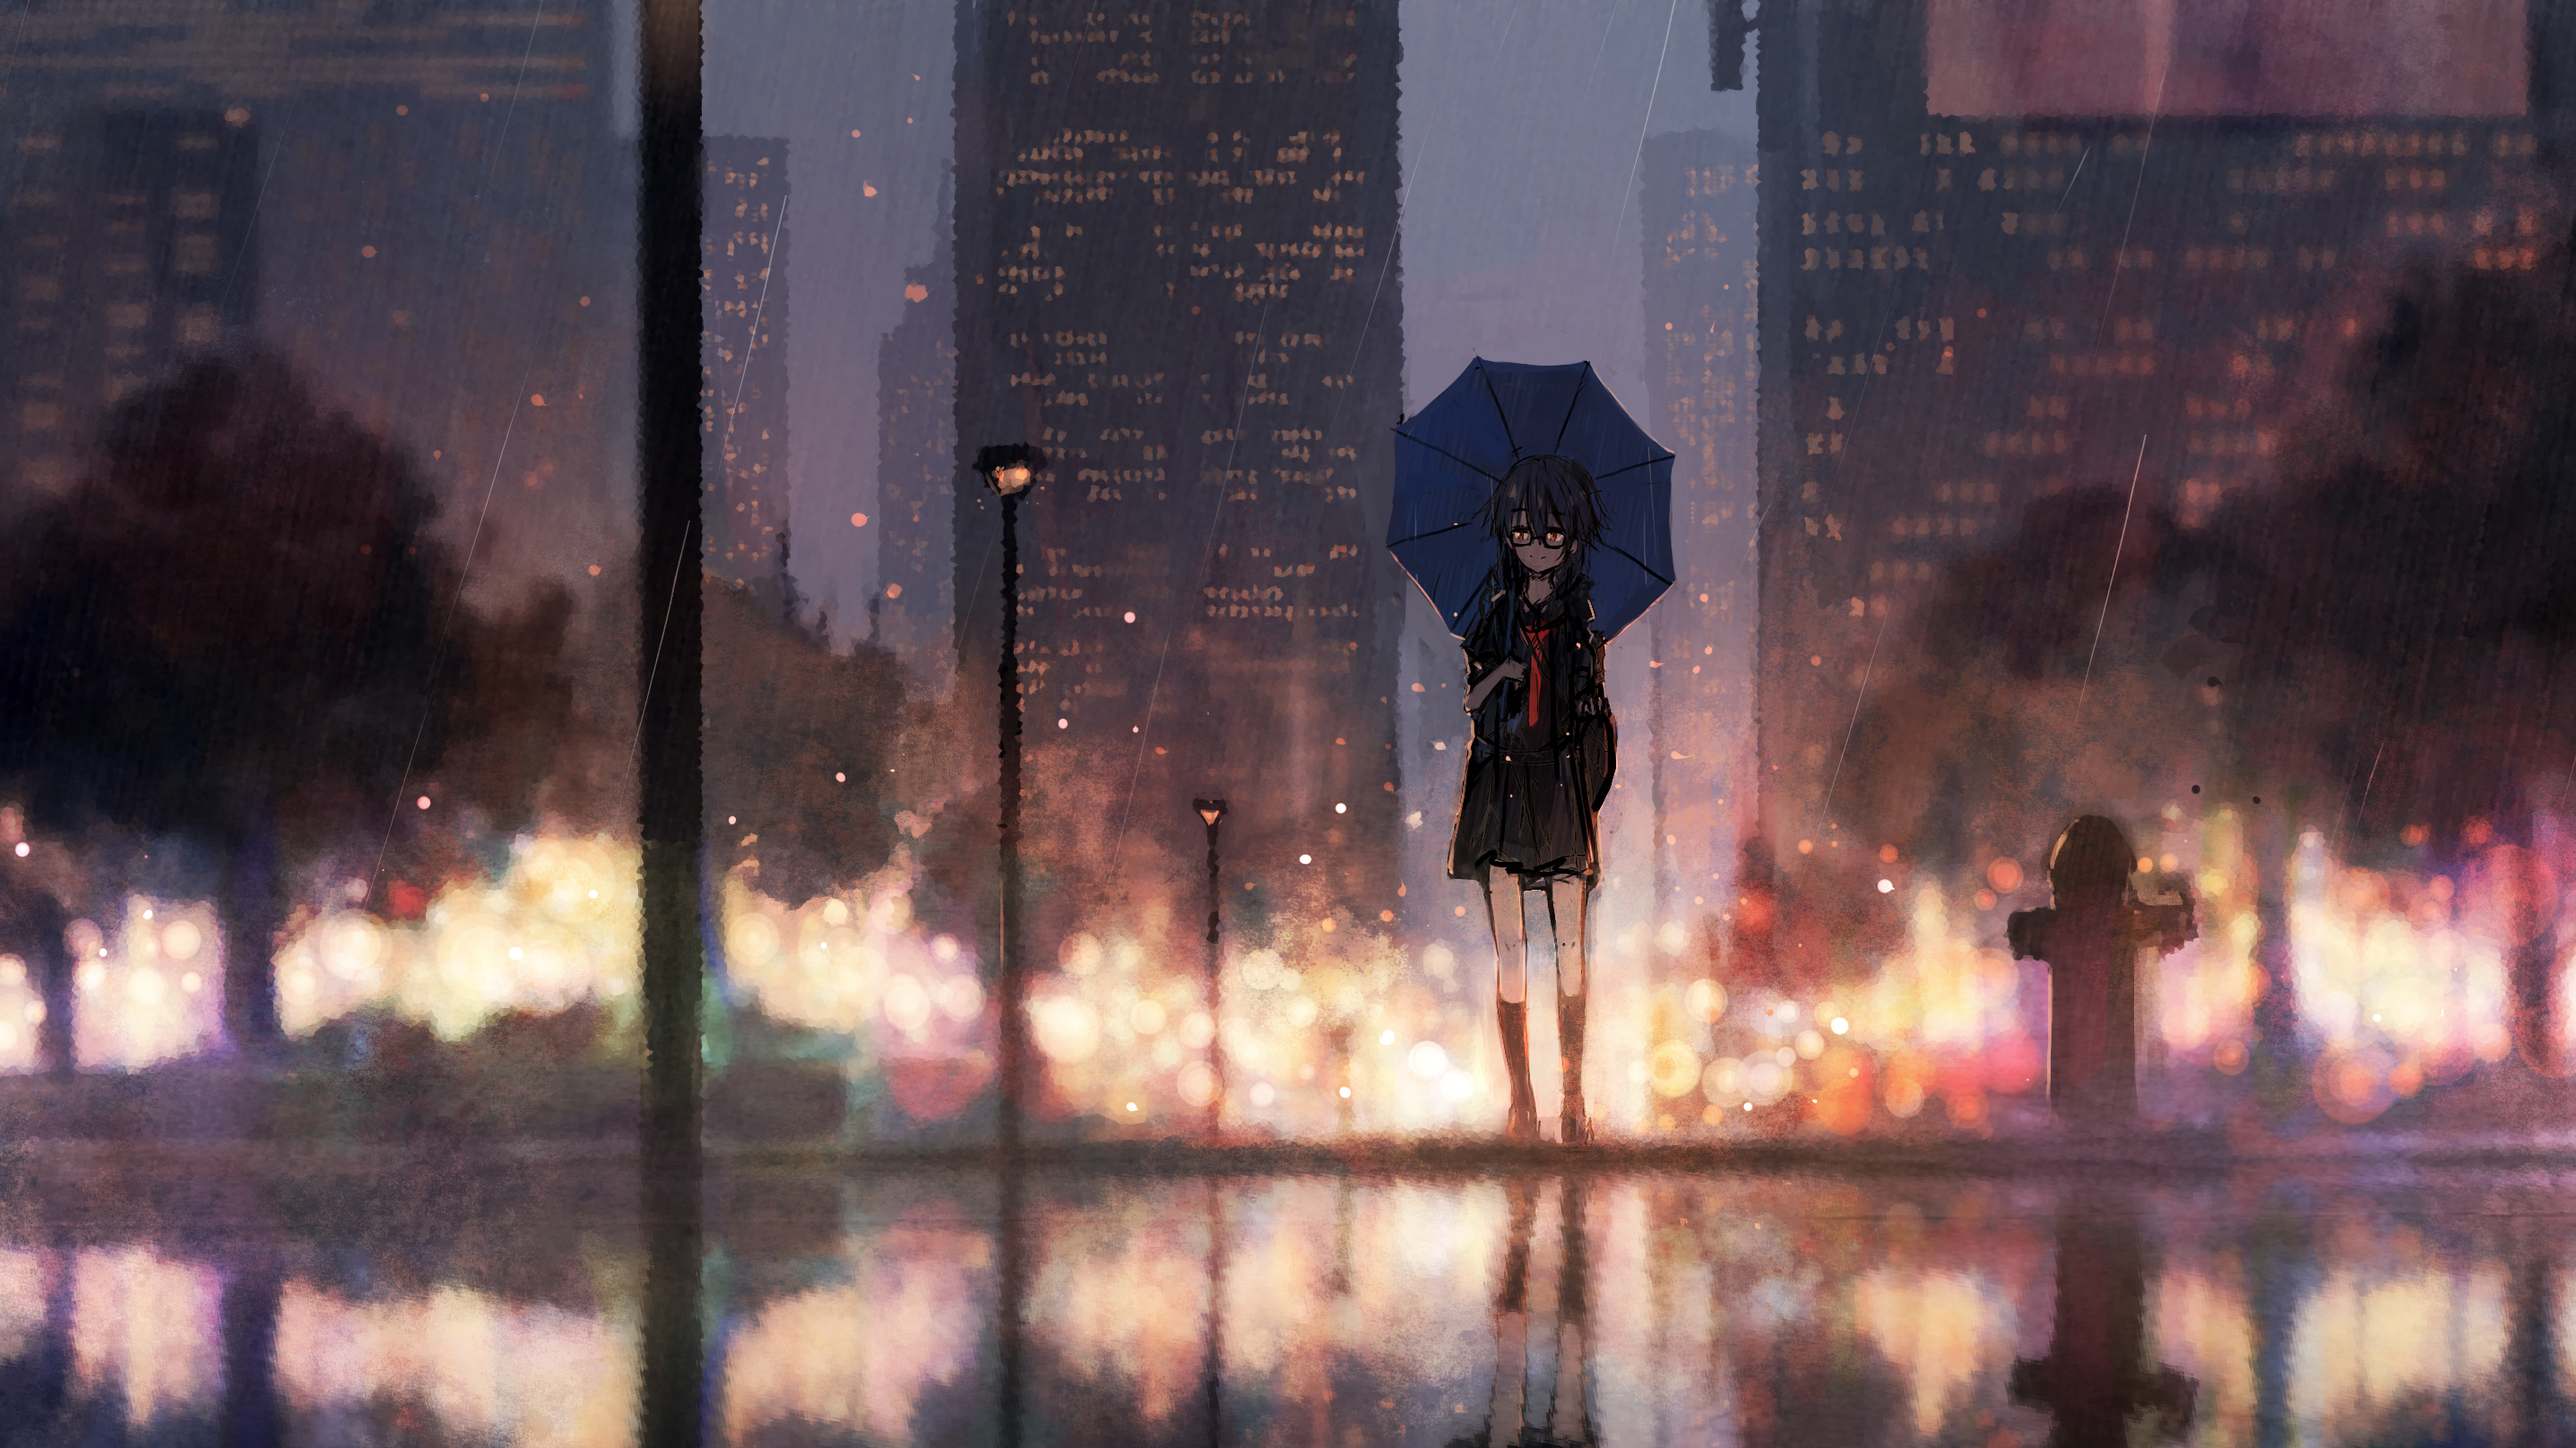 1920x1080 anime girl rain umbrella laptop full hd 1080p hd - Anime rain wallpaper ...